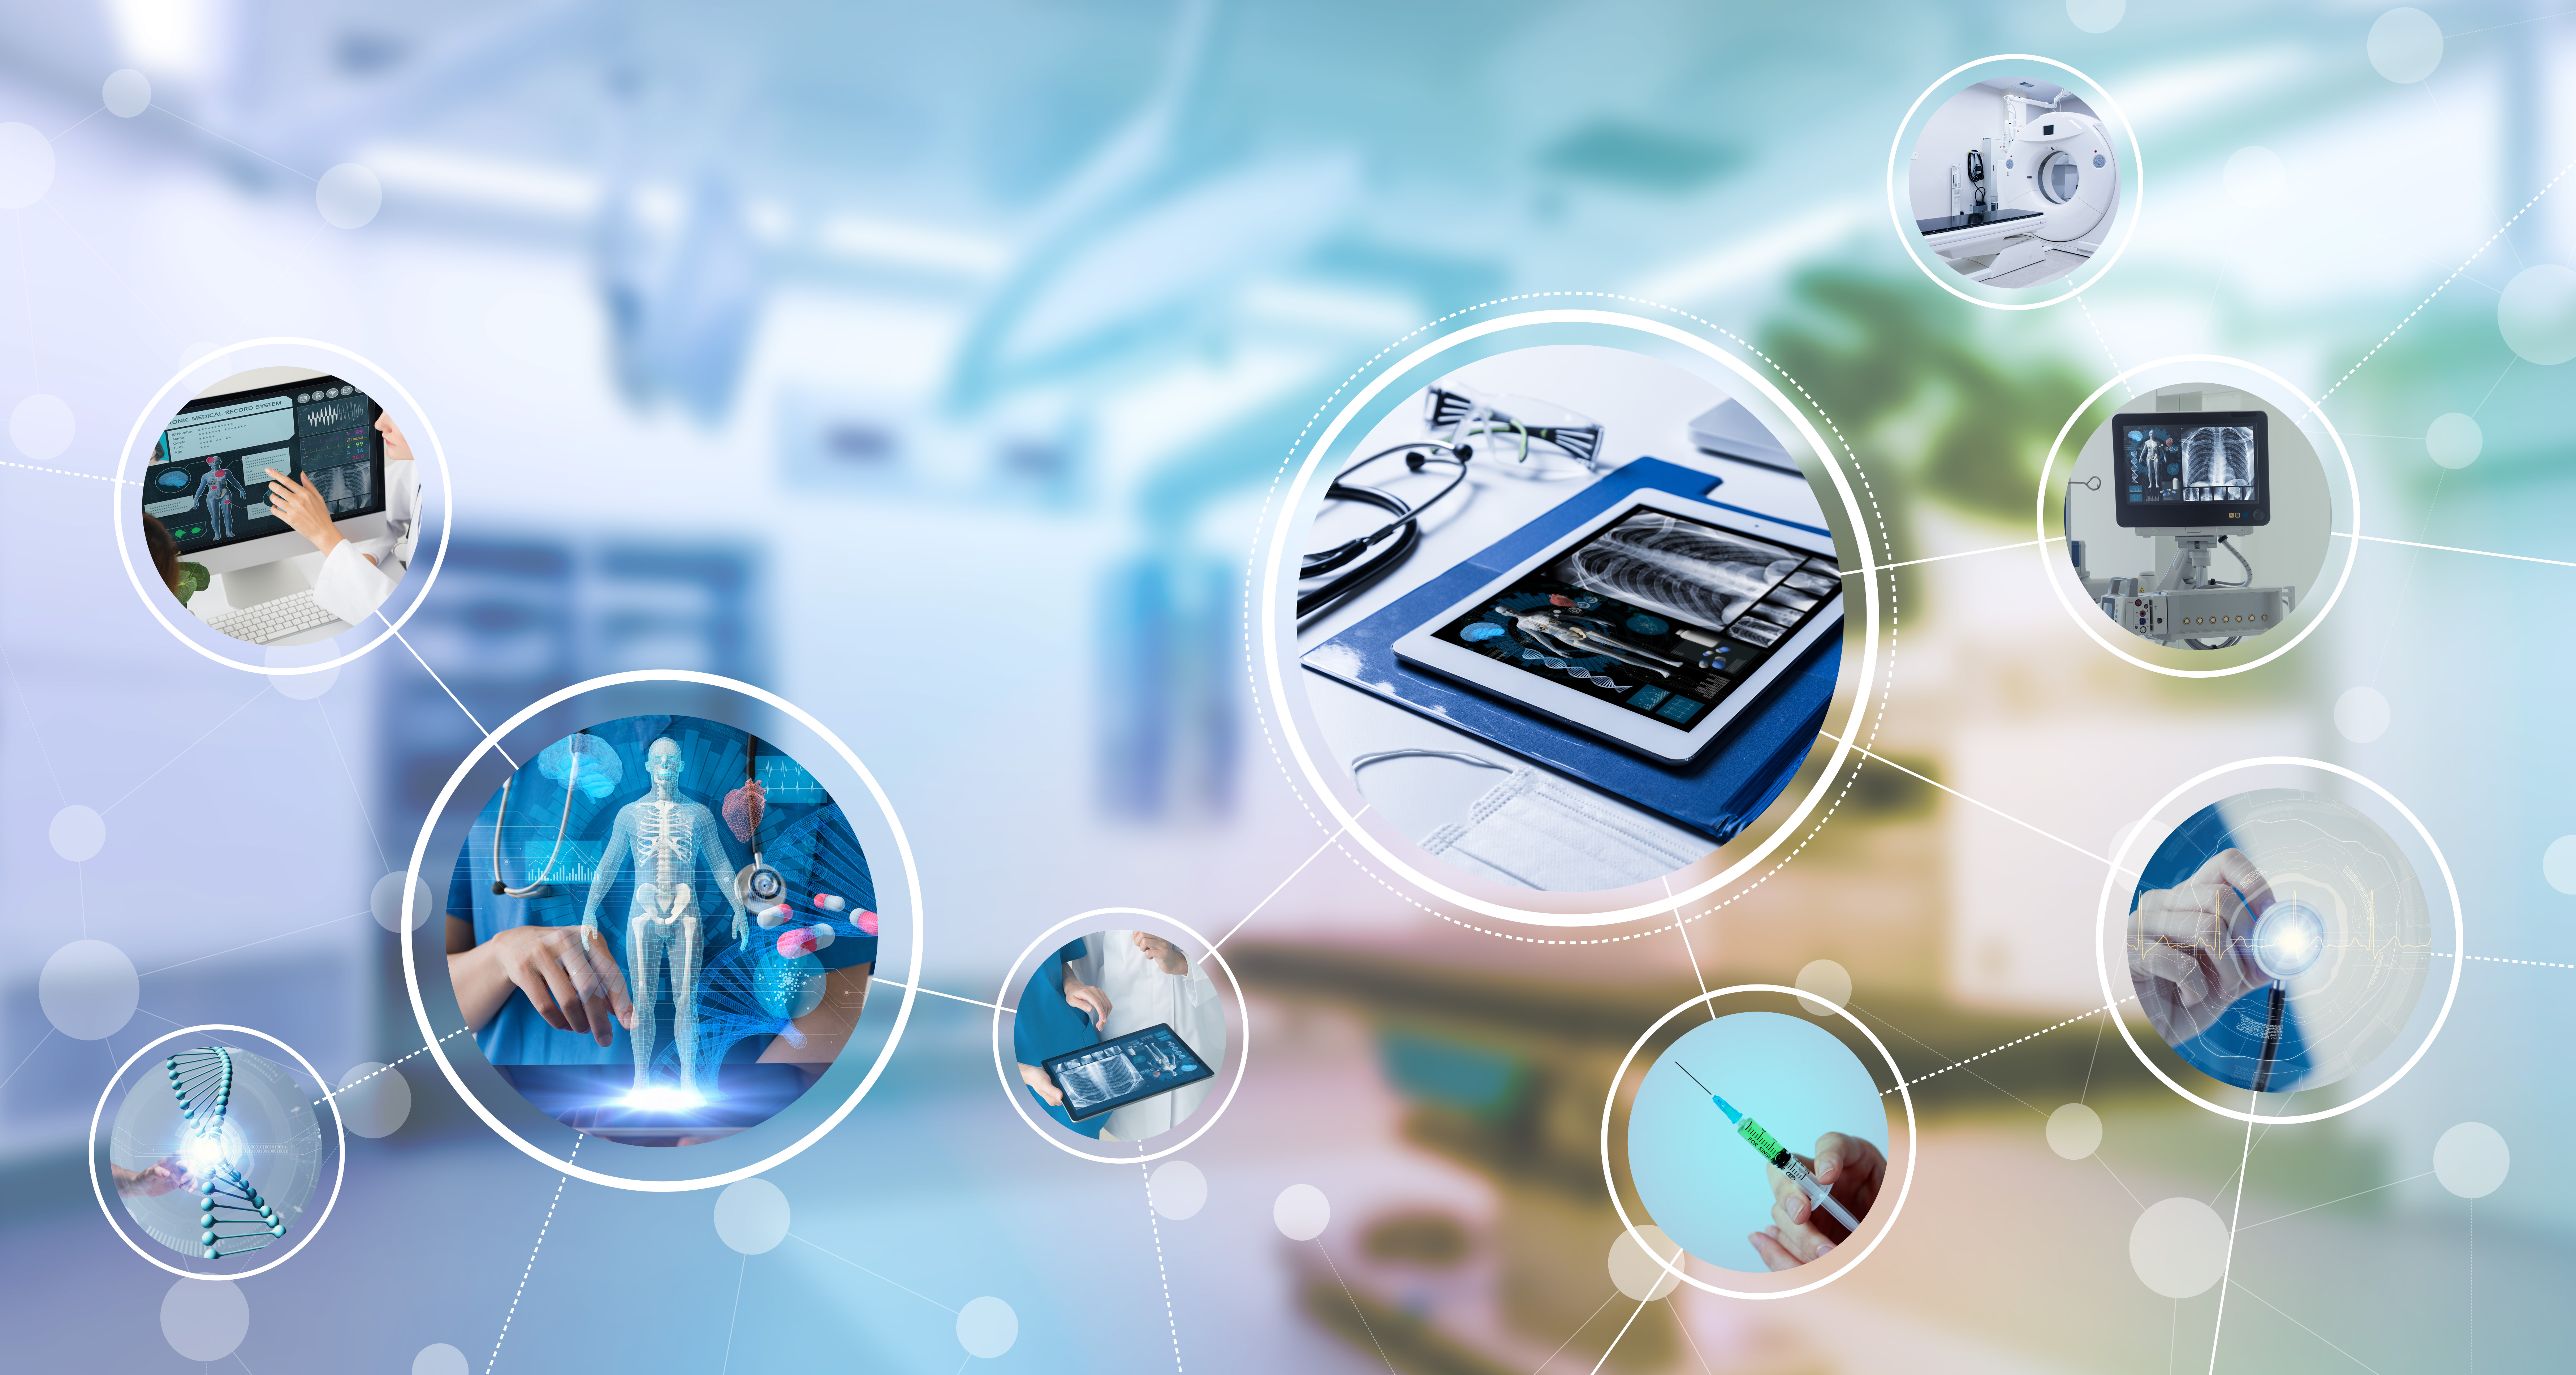 The paradox is that COVID-19 has manifested the critical need for exactly what the rules require: advancement of interoperability and digital online access to clinical data and imaging, at scale, for care coordination and infection control.